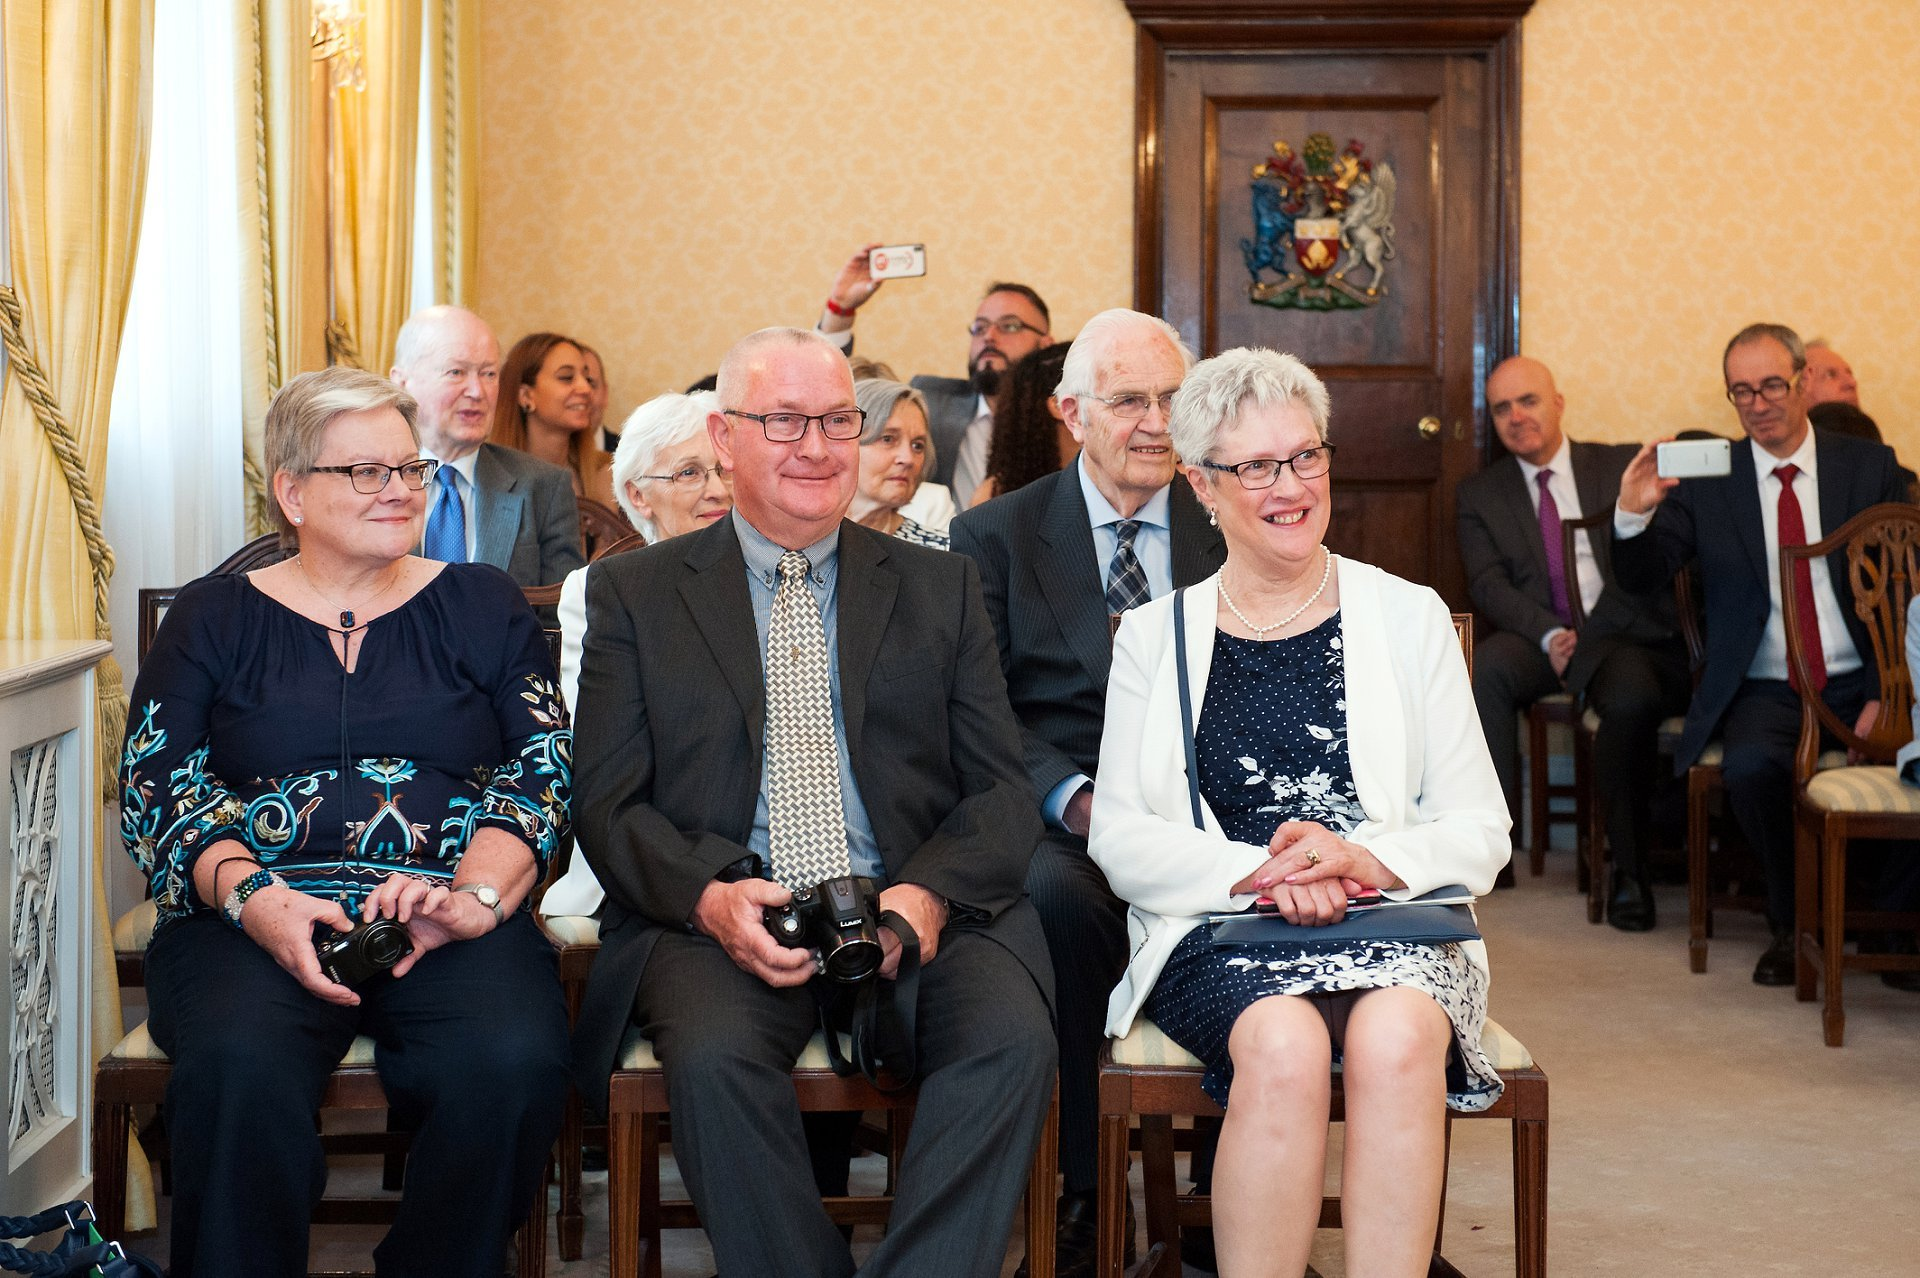 Wedding guests in the Brydon Room at Chelsea Registry Office